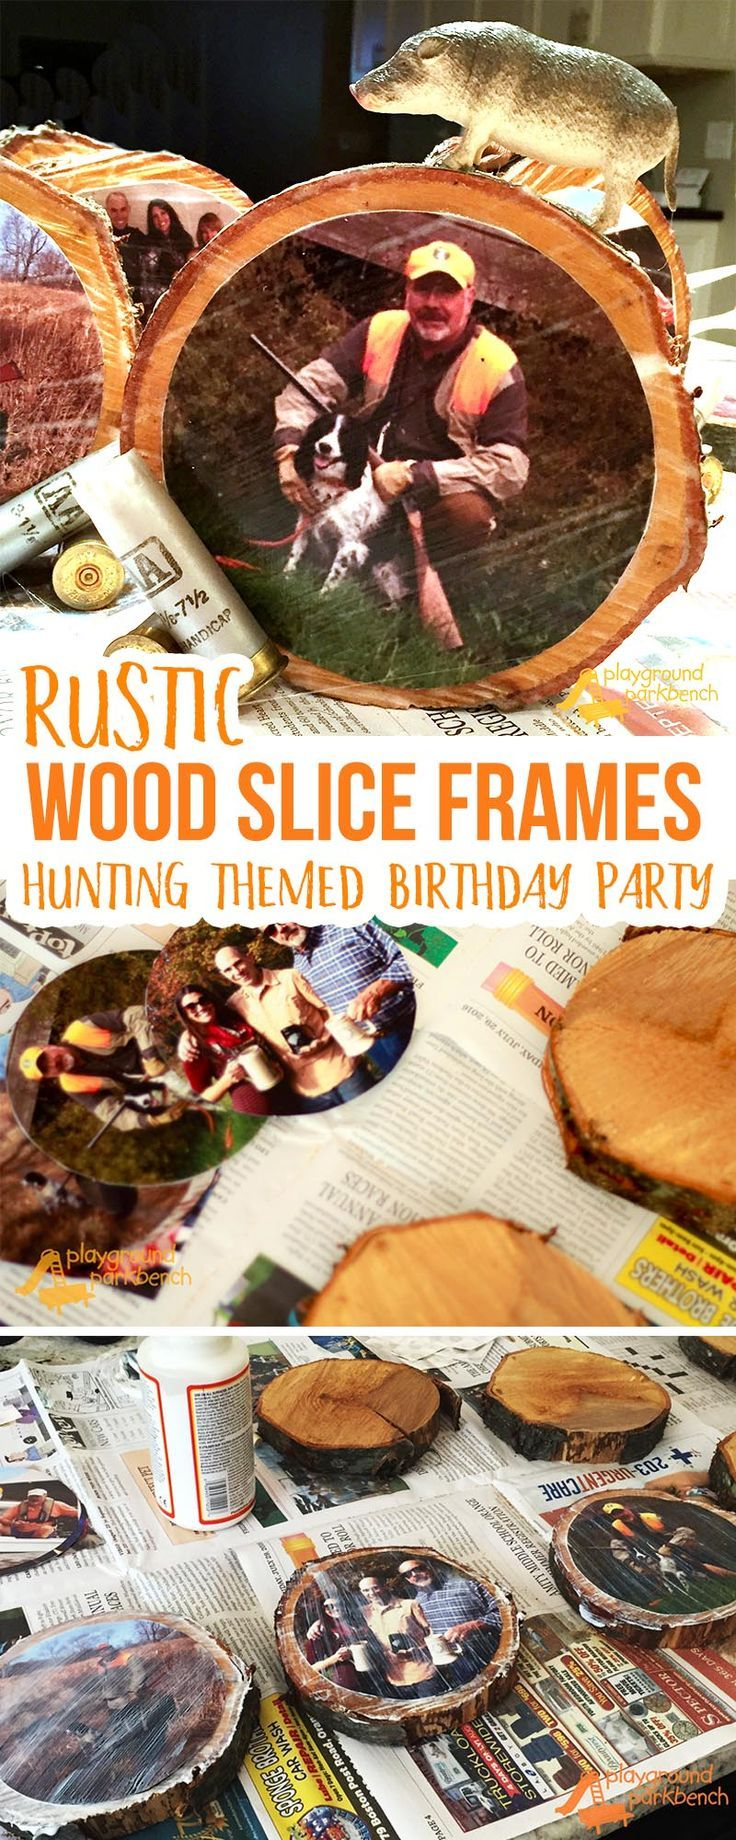 Want a fun, personalized touch to your Hunting Themed Birthday Party? These Rustic Wood Slice Frames were such a festive touch to our party centerpieces. They also now make awesome home decor accents at my in-law's mountain cabin home. | Party Ideas | Home Decor | DIY | Photo Frames | Rustic Home Decor | Cabin Decor |